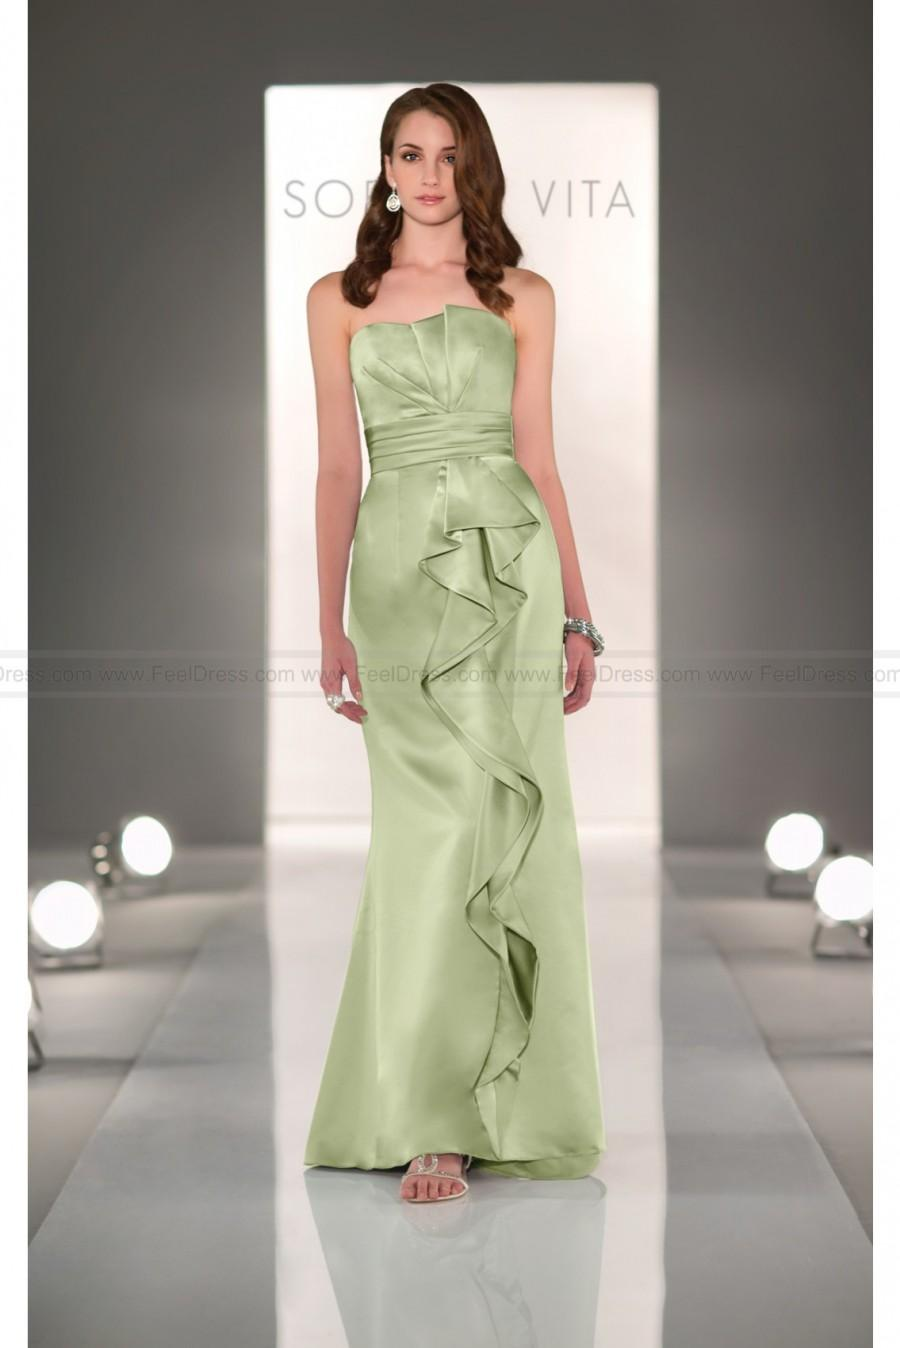 Sorella vita sage green bridesmaid dress style 8275 2445617 sorella vita sage green bridesmaid dress style 8275 ombrellifo Gallery